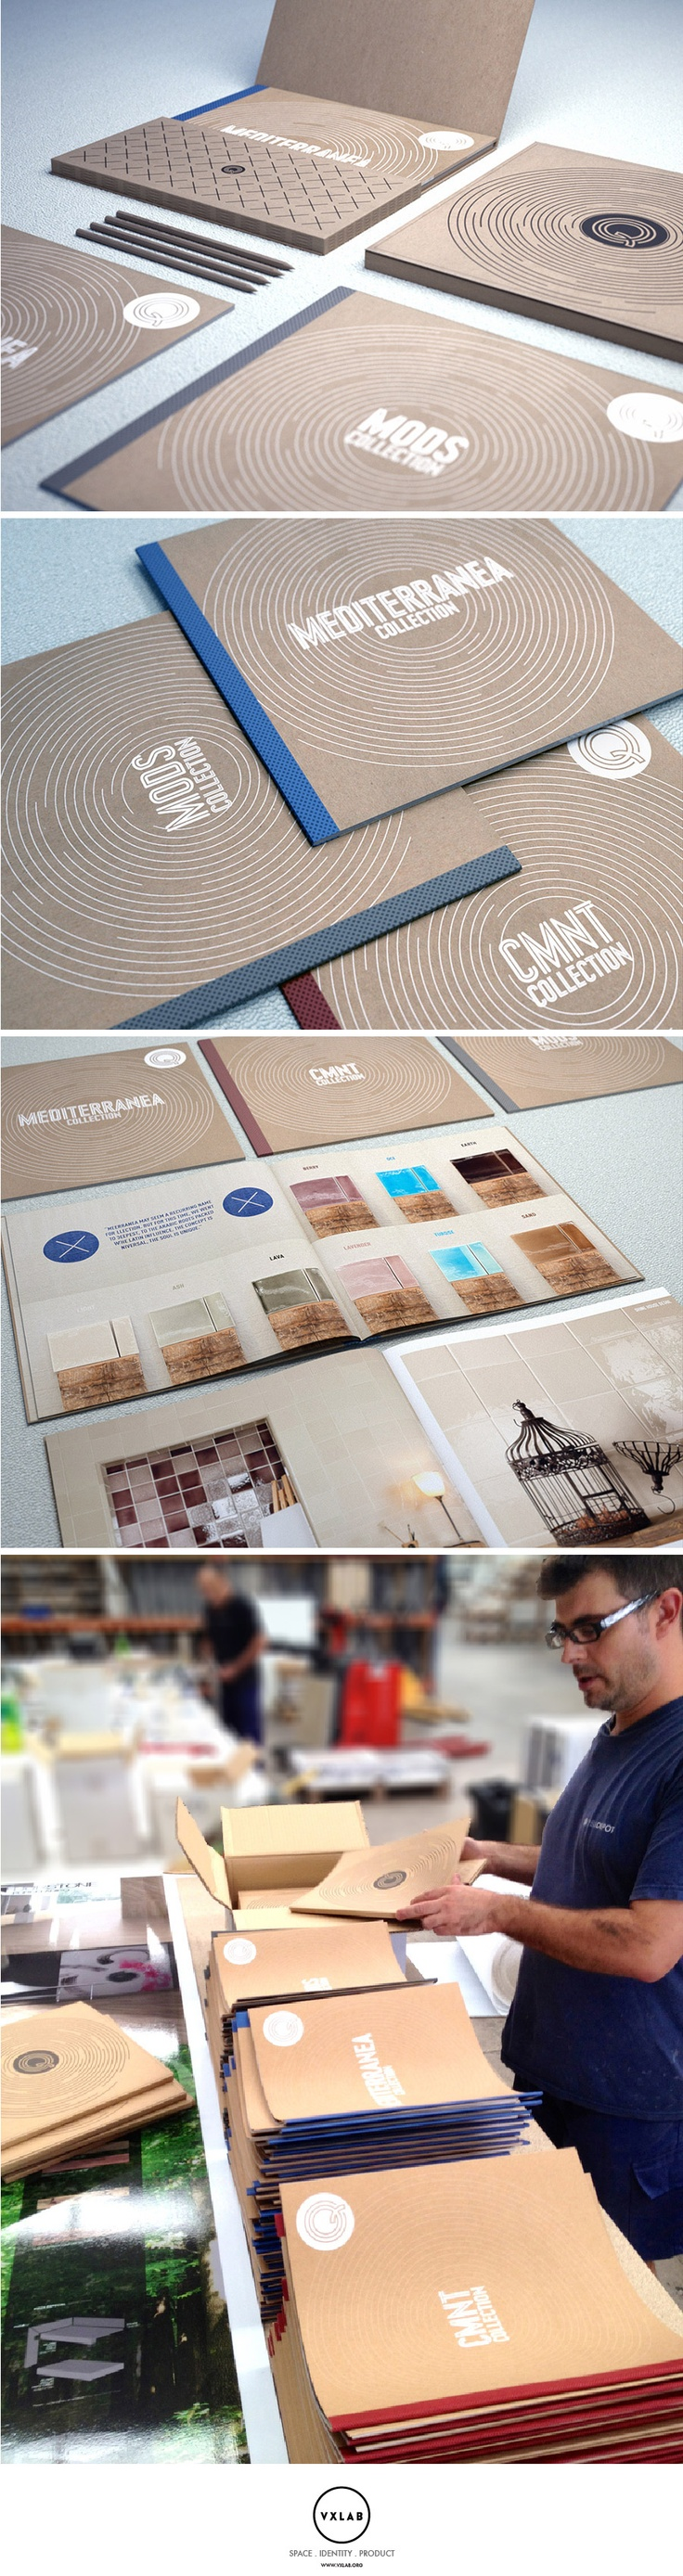 Catalogue: Brochure Set Design for Q Tiles. Design by VXLAB. www.vxlab.org